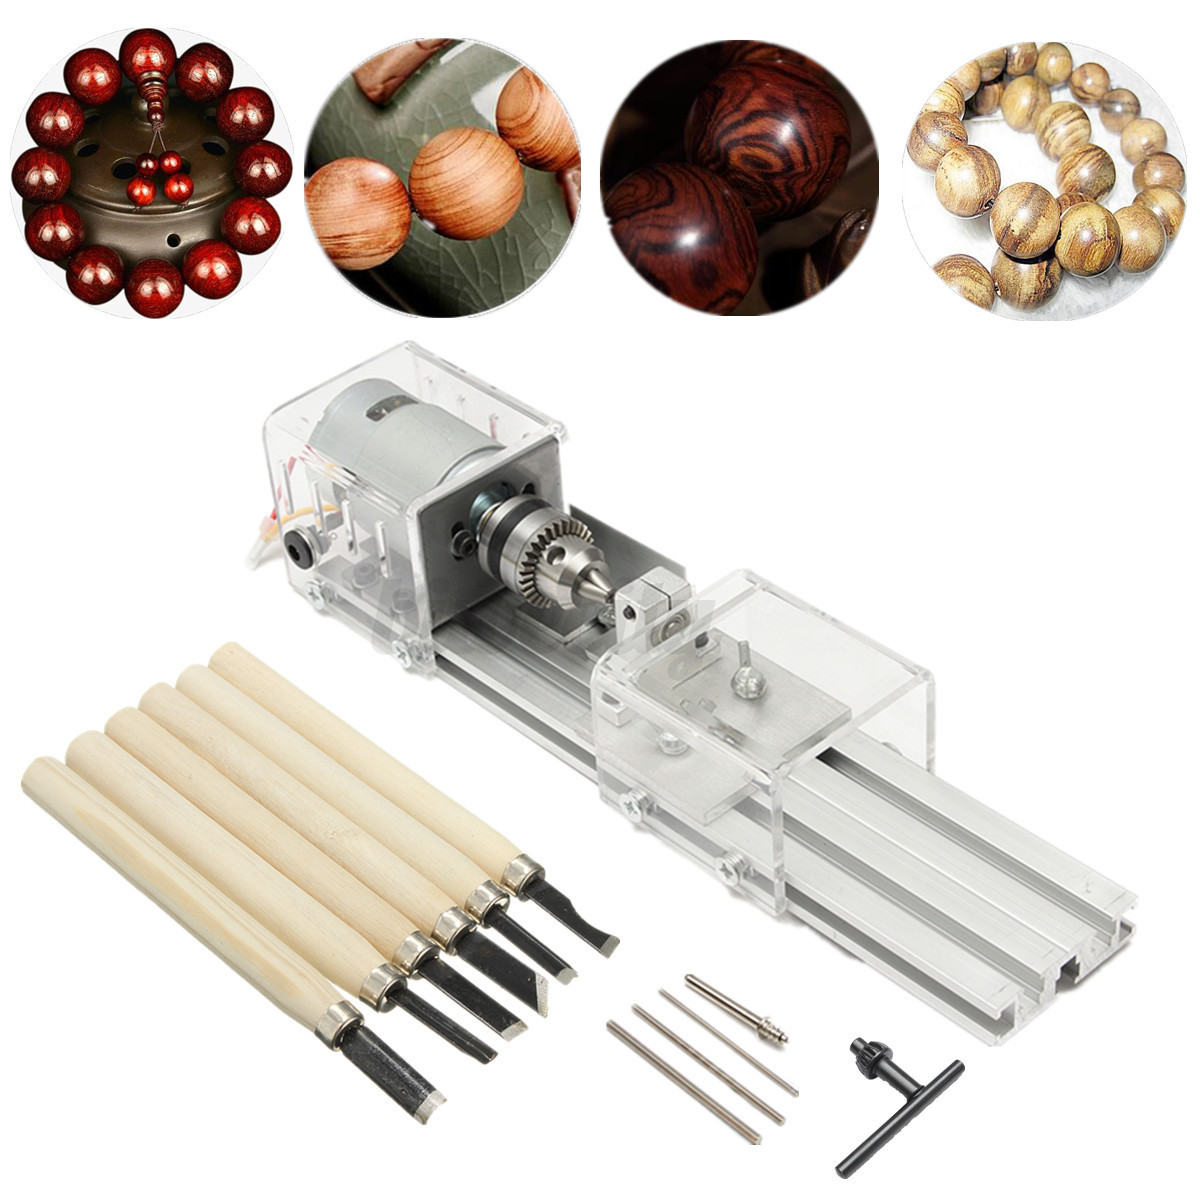 ... Bead Lathe Machine Polisher DIY Woodworking Cutting Rotary Tool | eBay